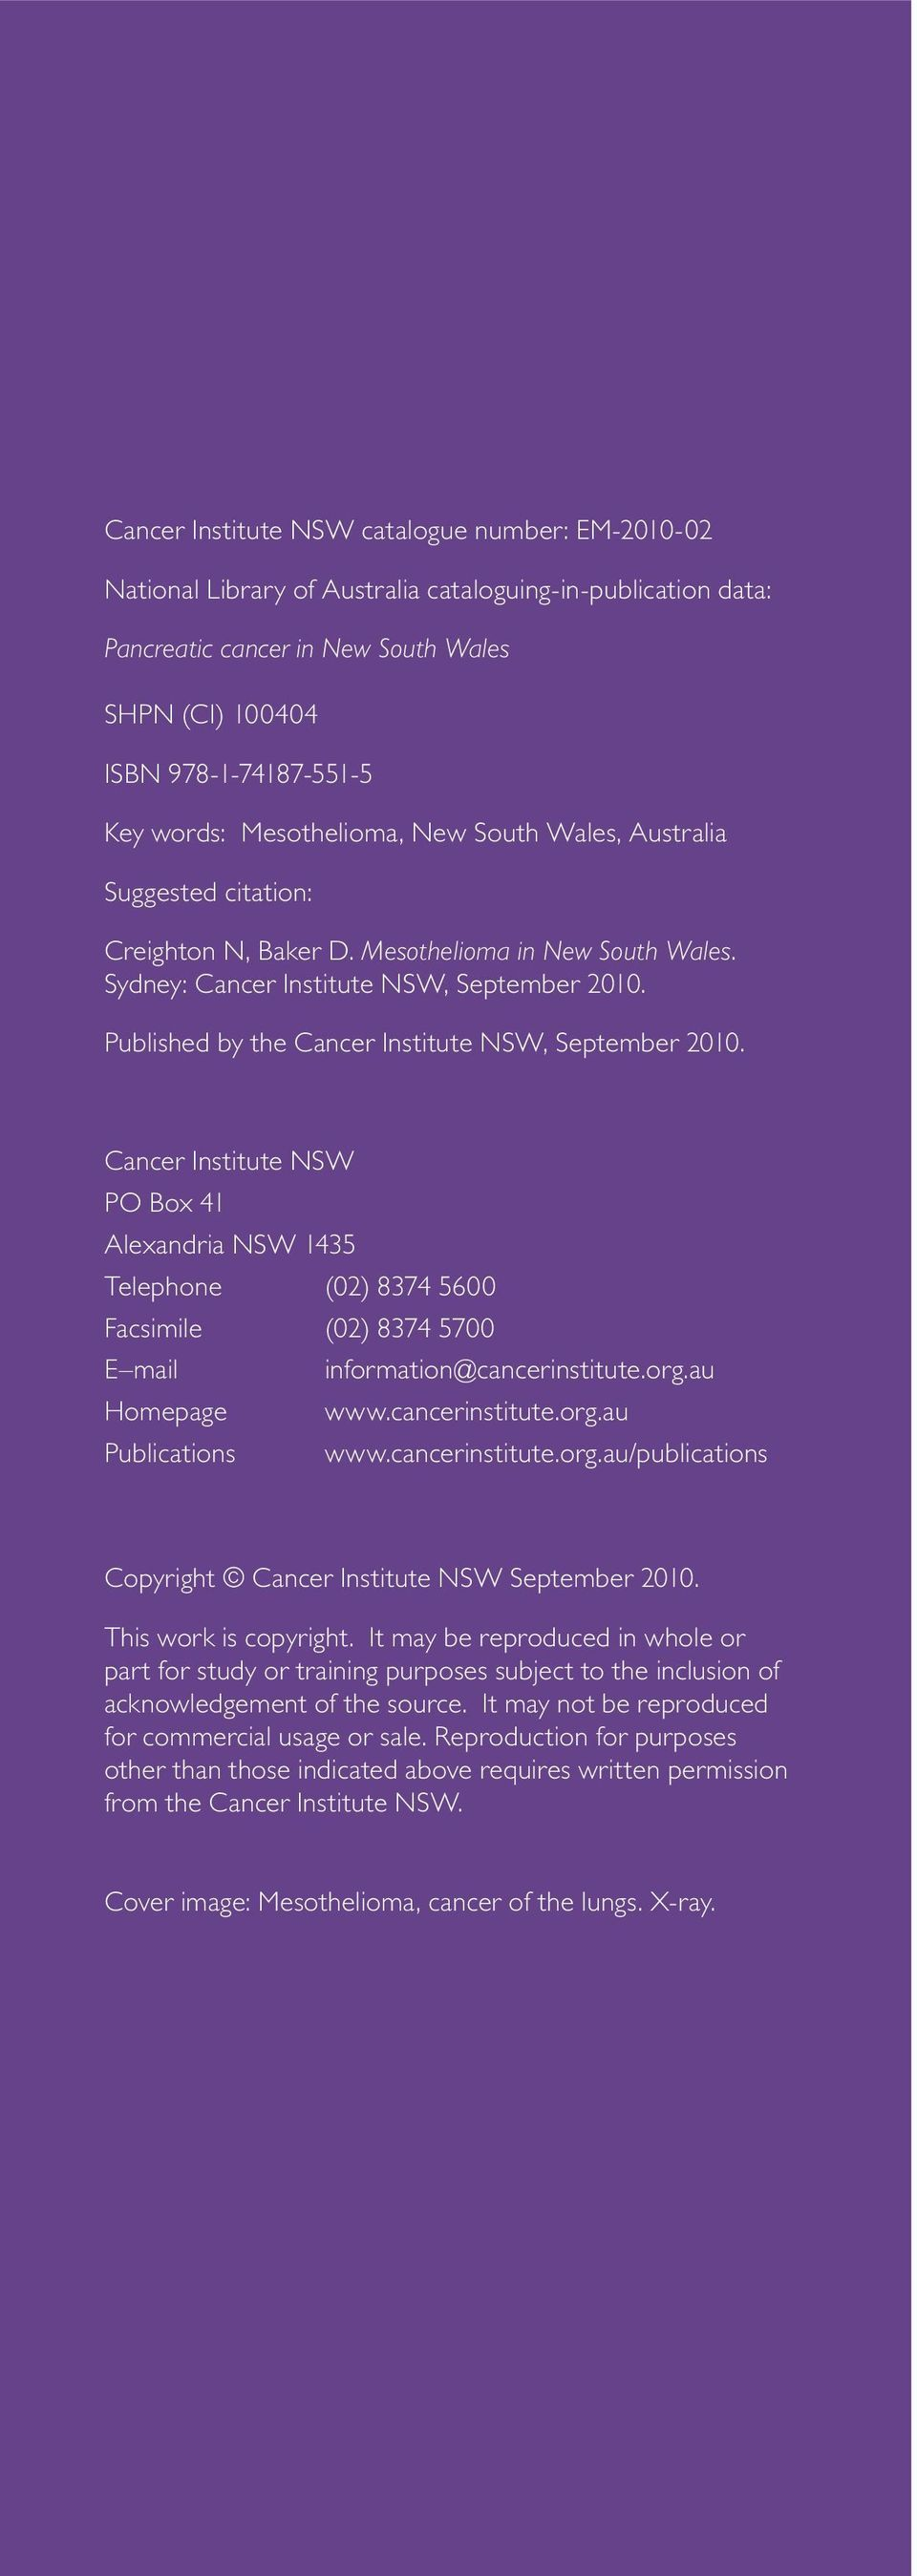 Published by the Cancer Institute NSW, September 2010. Cancer Institute NSW PO Box 41 Alexandria NSW 1435 Telephone (02) 8374 5600 Facsimile (02) 8374 5700 E mail information@cancerinstitute.org.